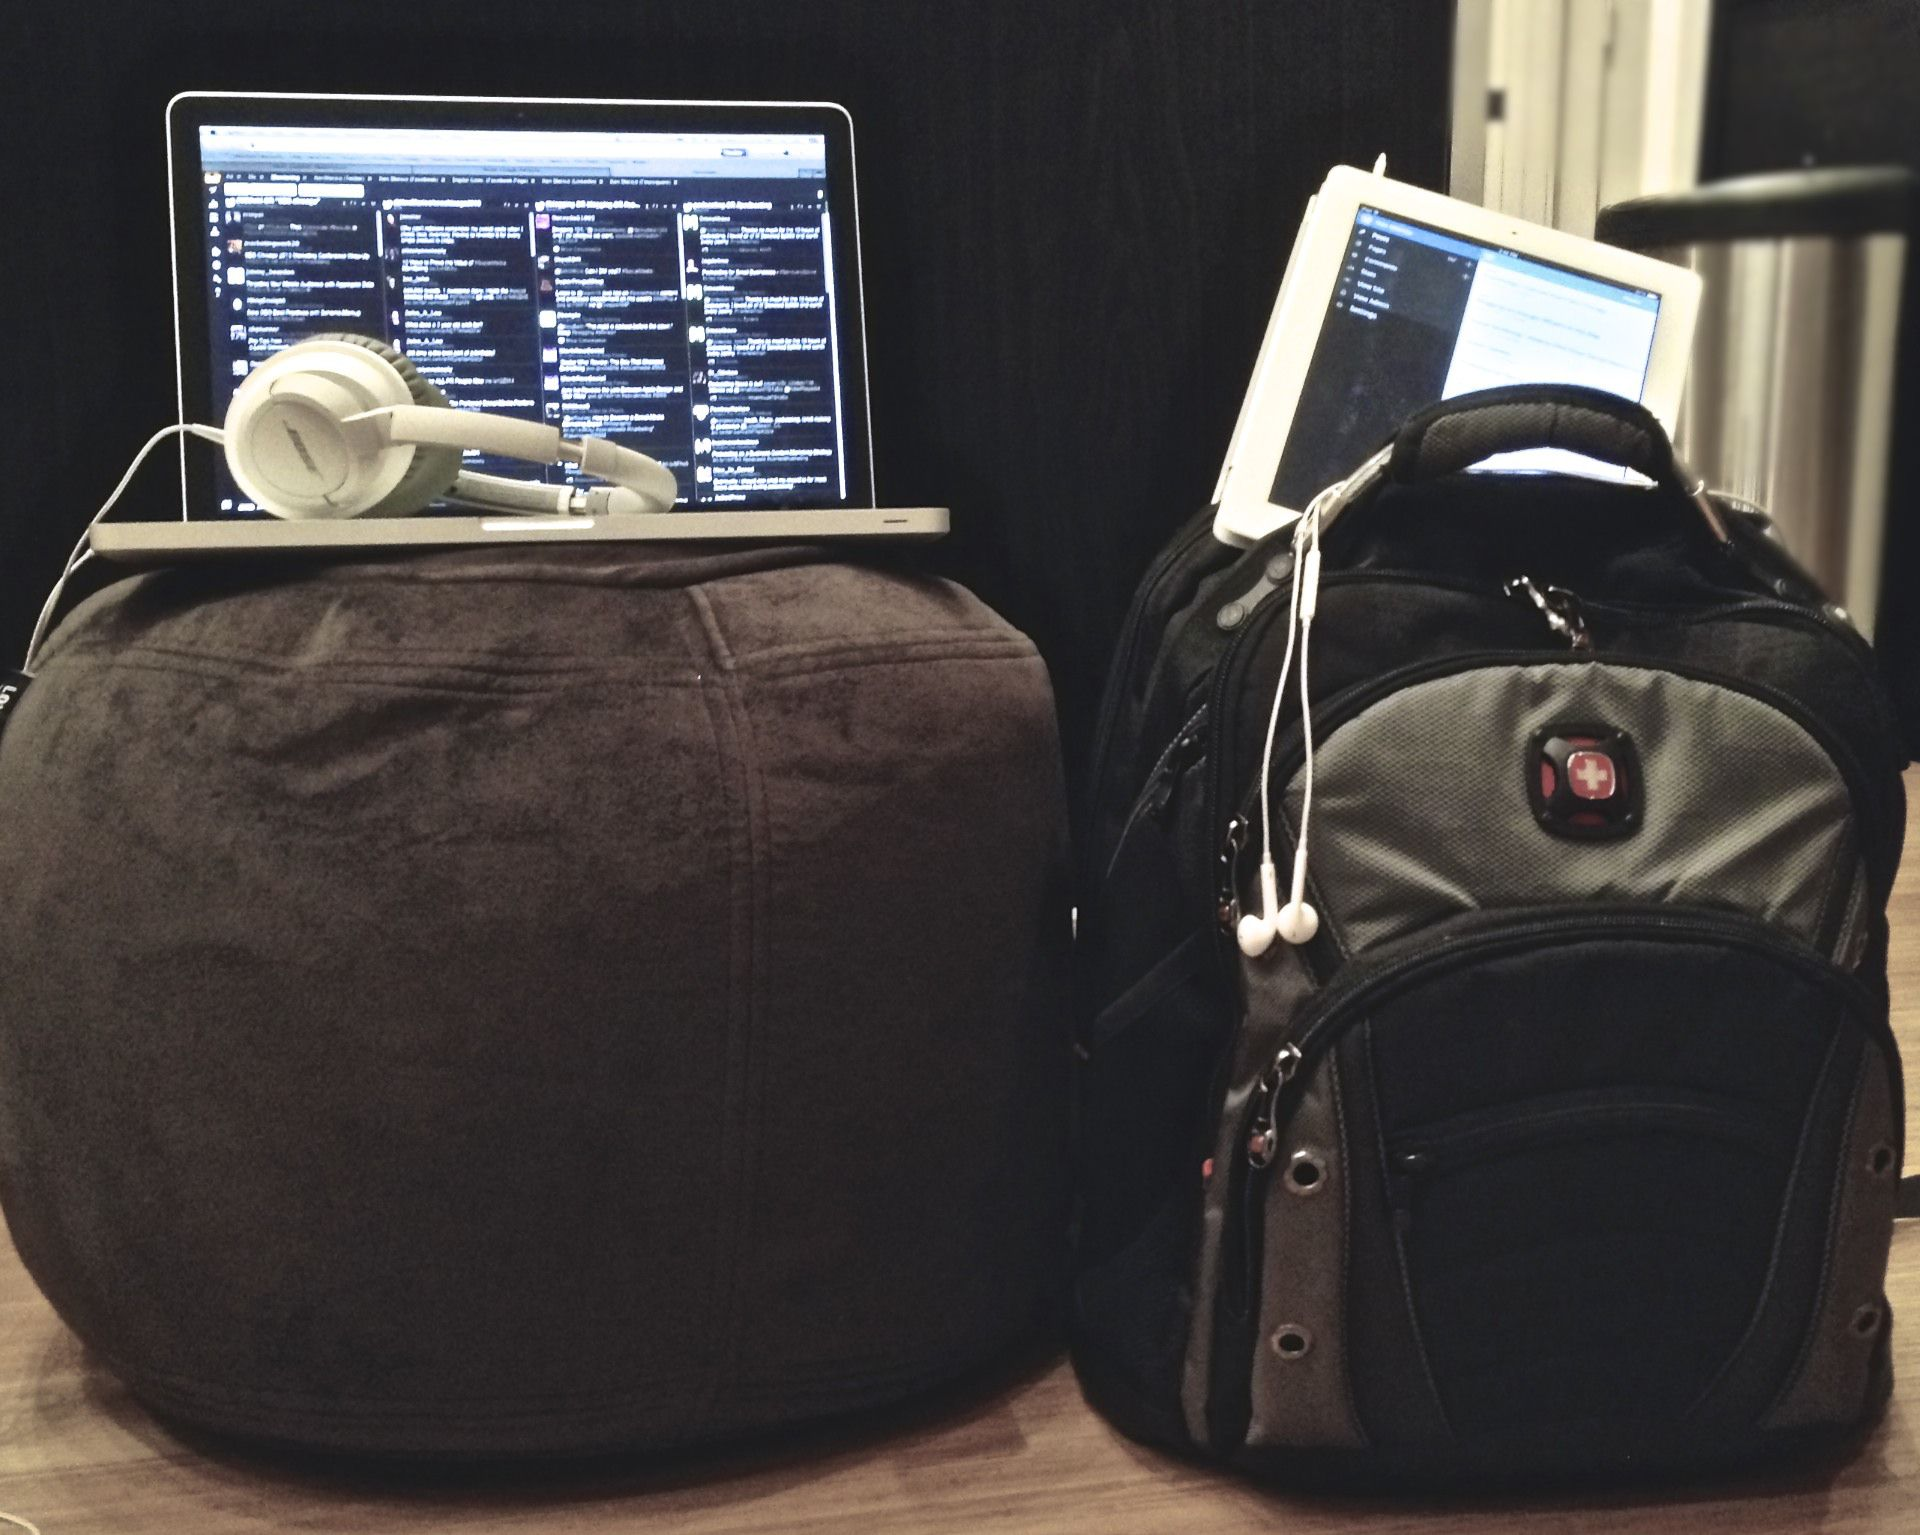 whats in my bag - macbook bose AE2 headphones iPad Swiss Gear Backpack